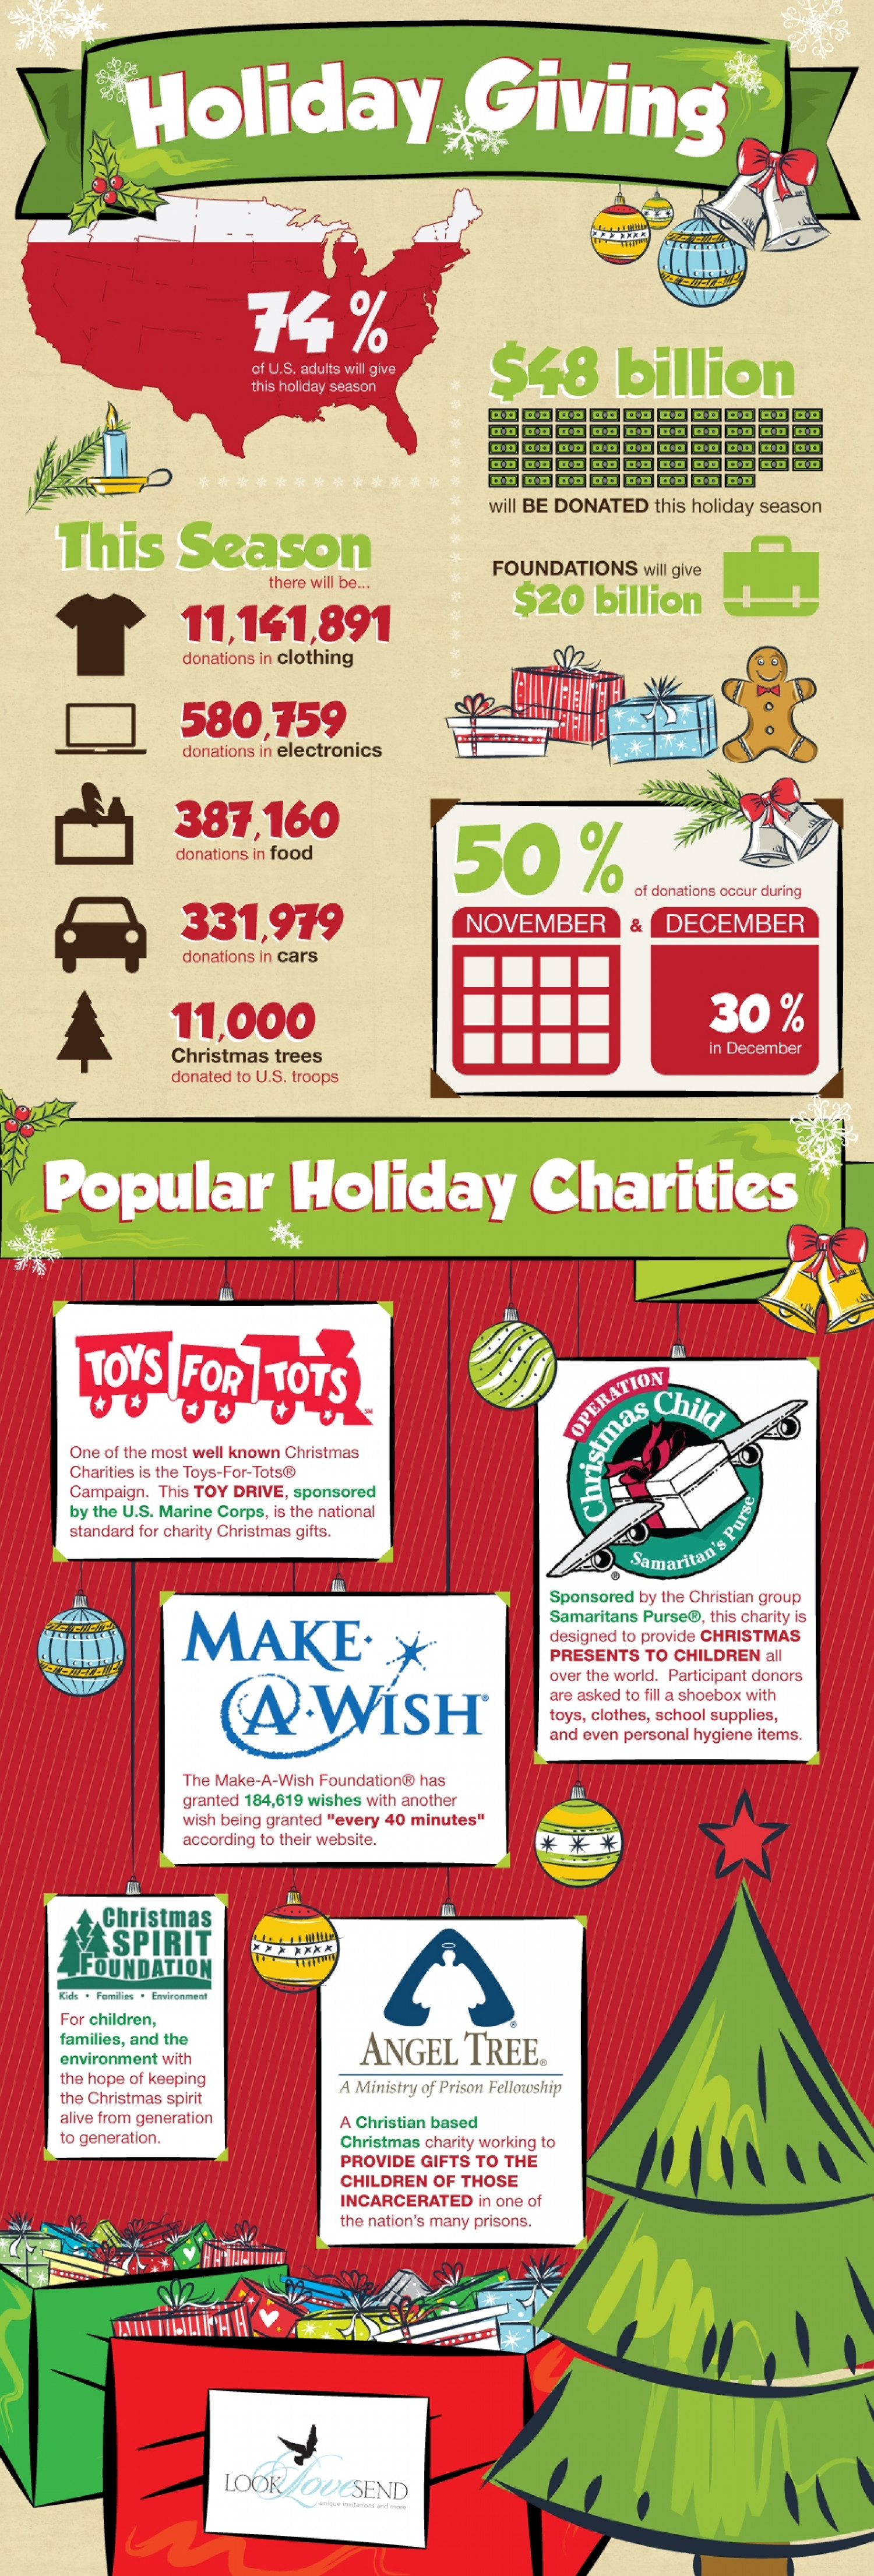 Holiday Giving Infographic